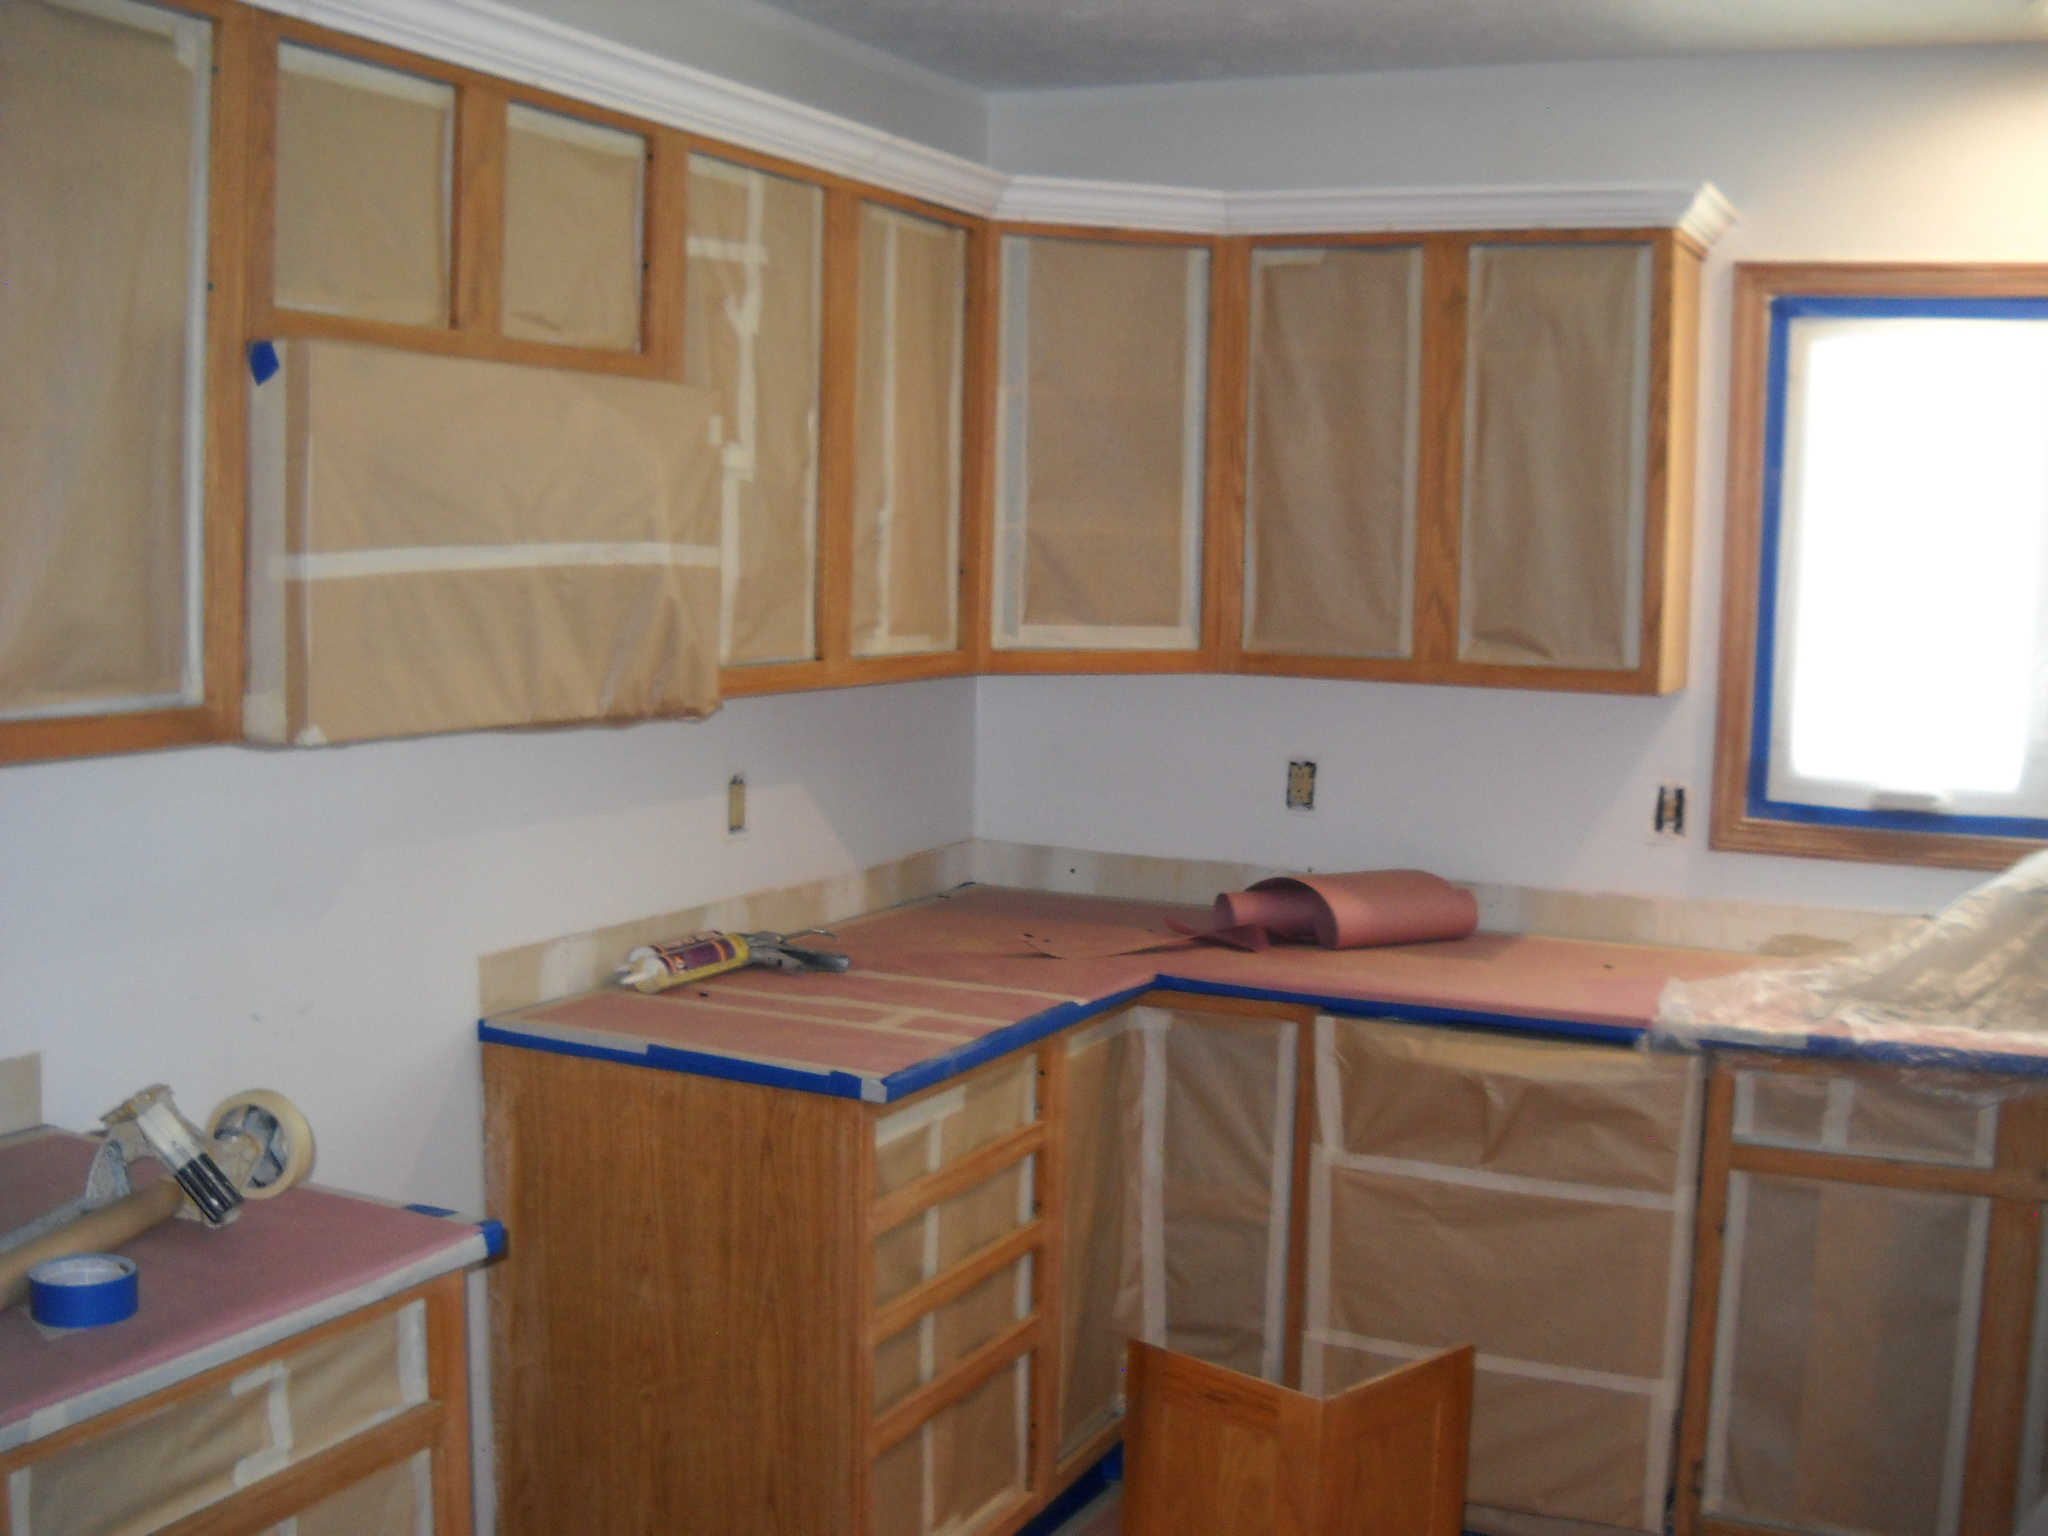 Cabinet Painting Prep